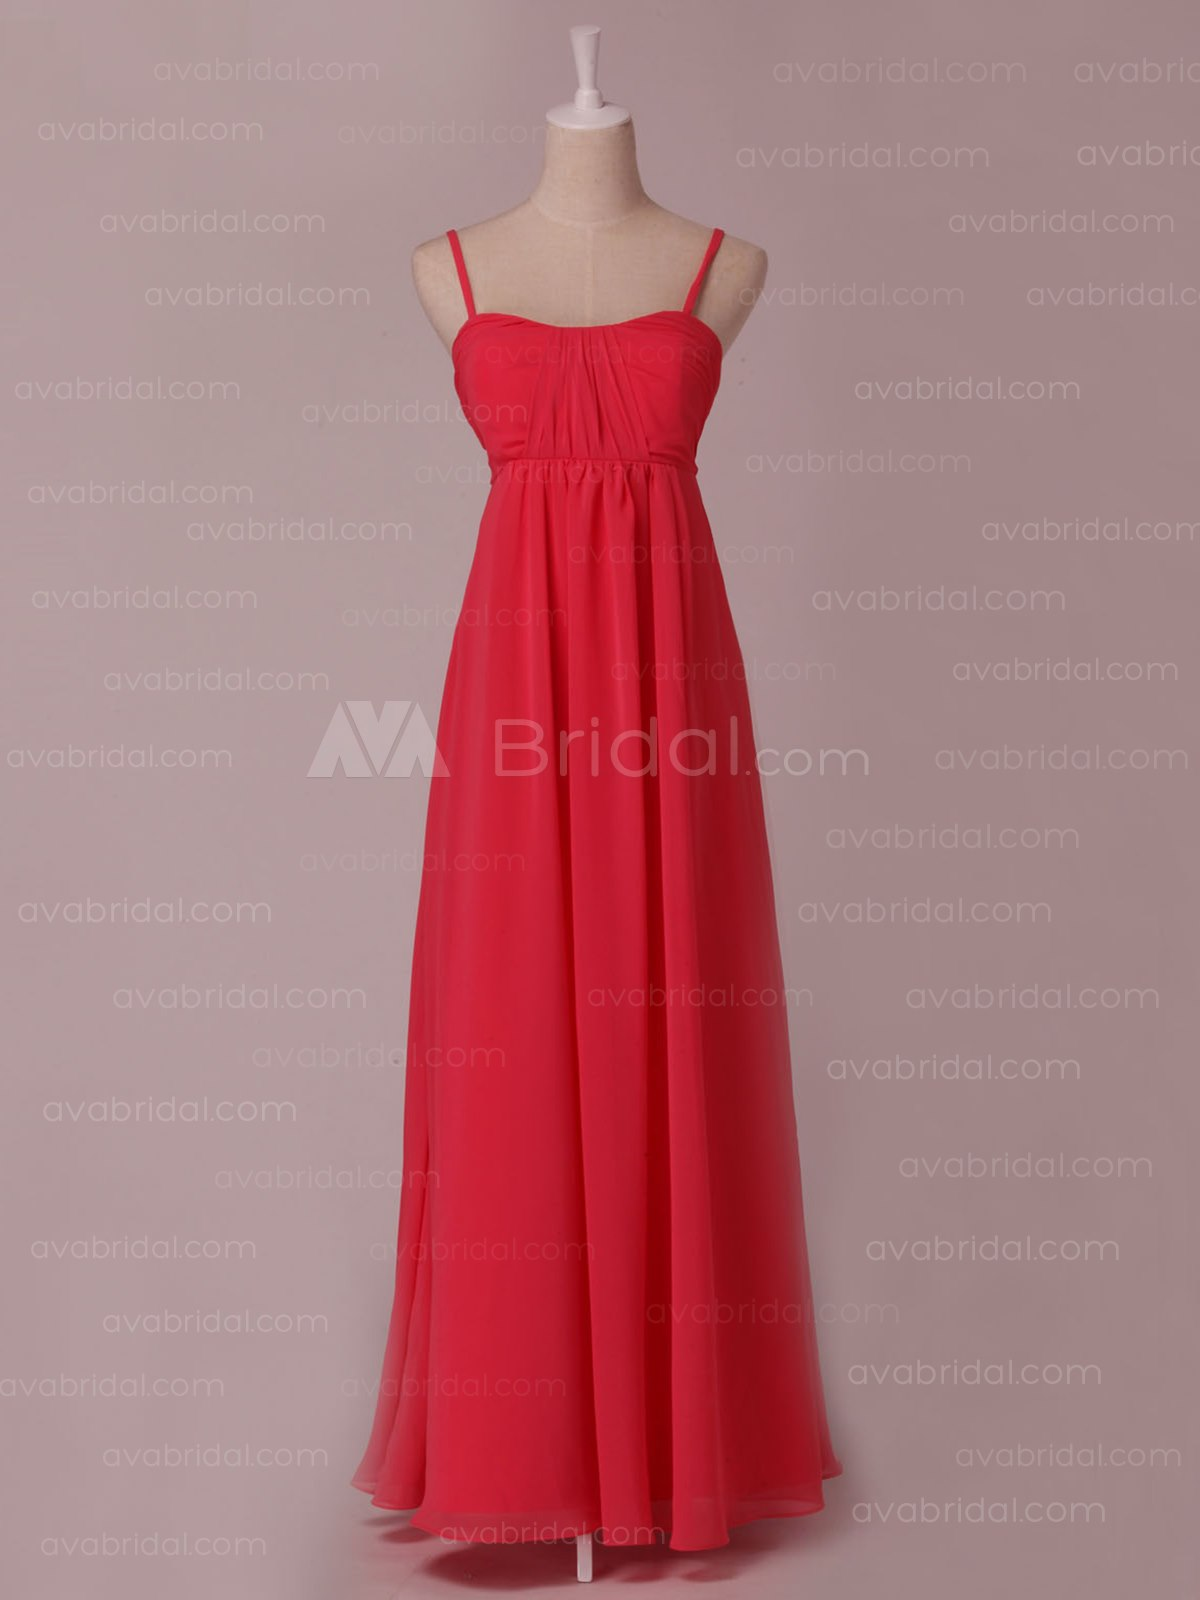 Classic Sheath Chiffon Bridesmaid Dress B452-Front